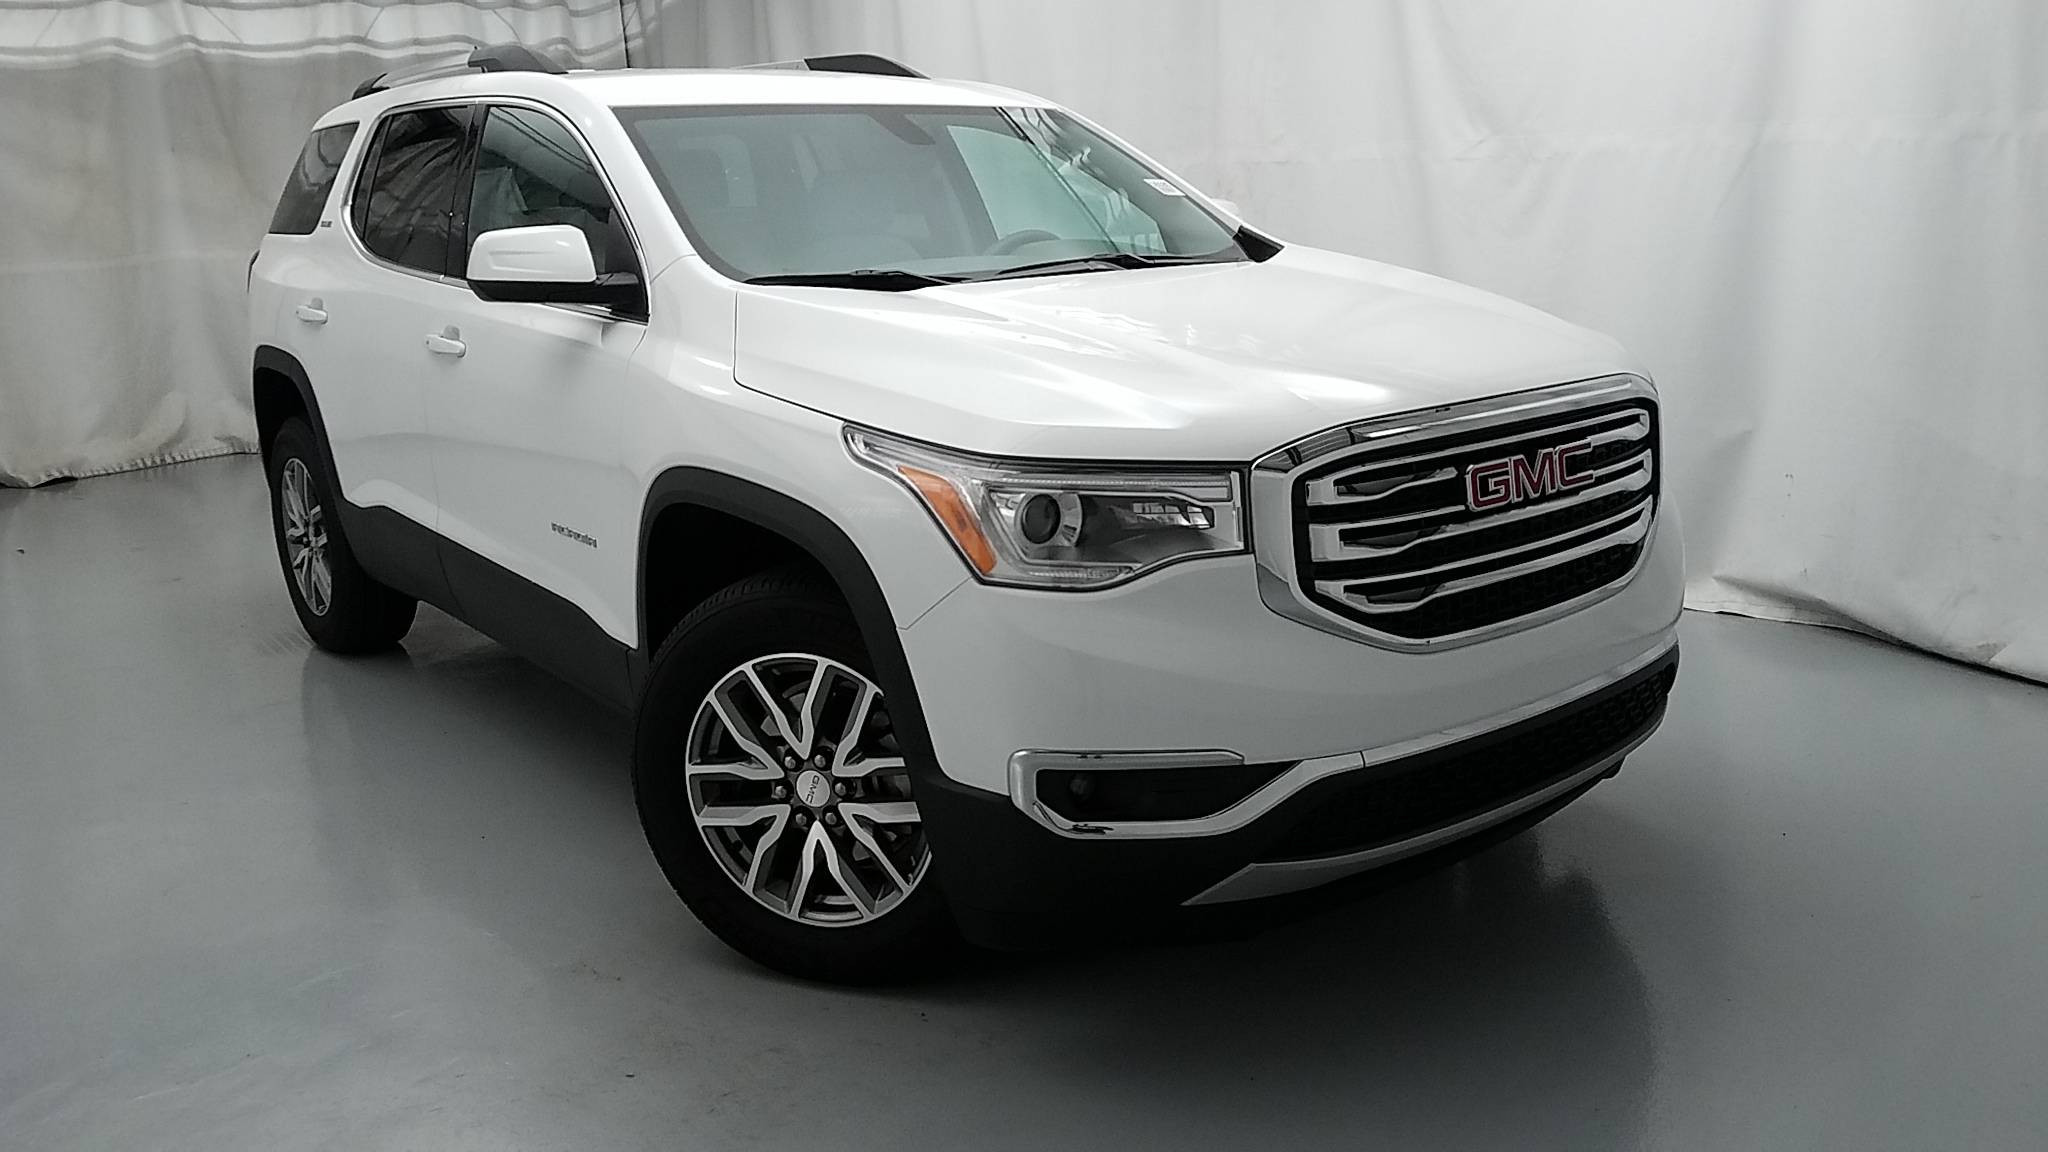 acadian used cars baton rouge beautiful 2018 terrain at ross downing used cars in hammond and